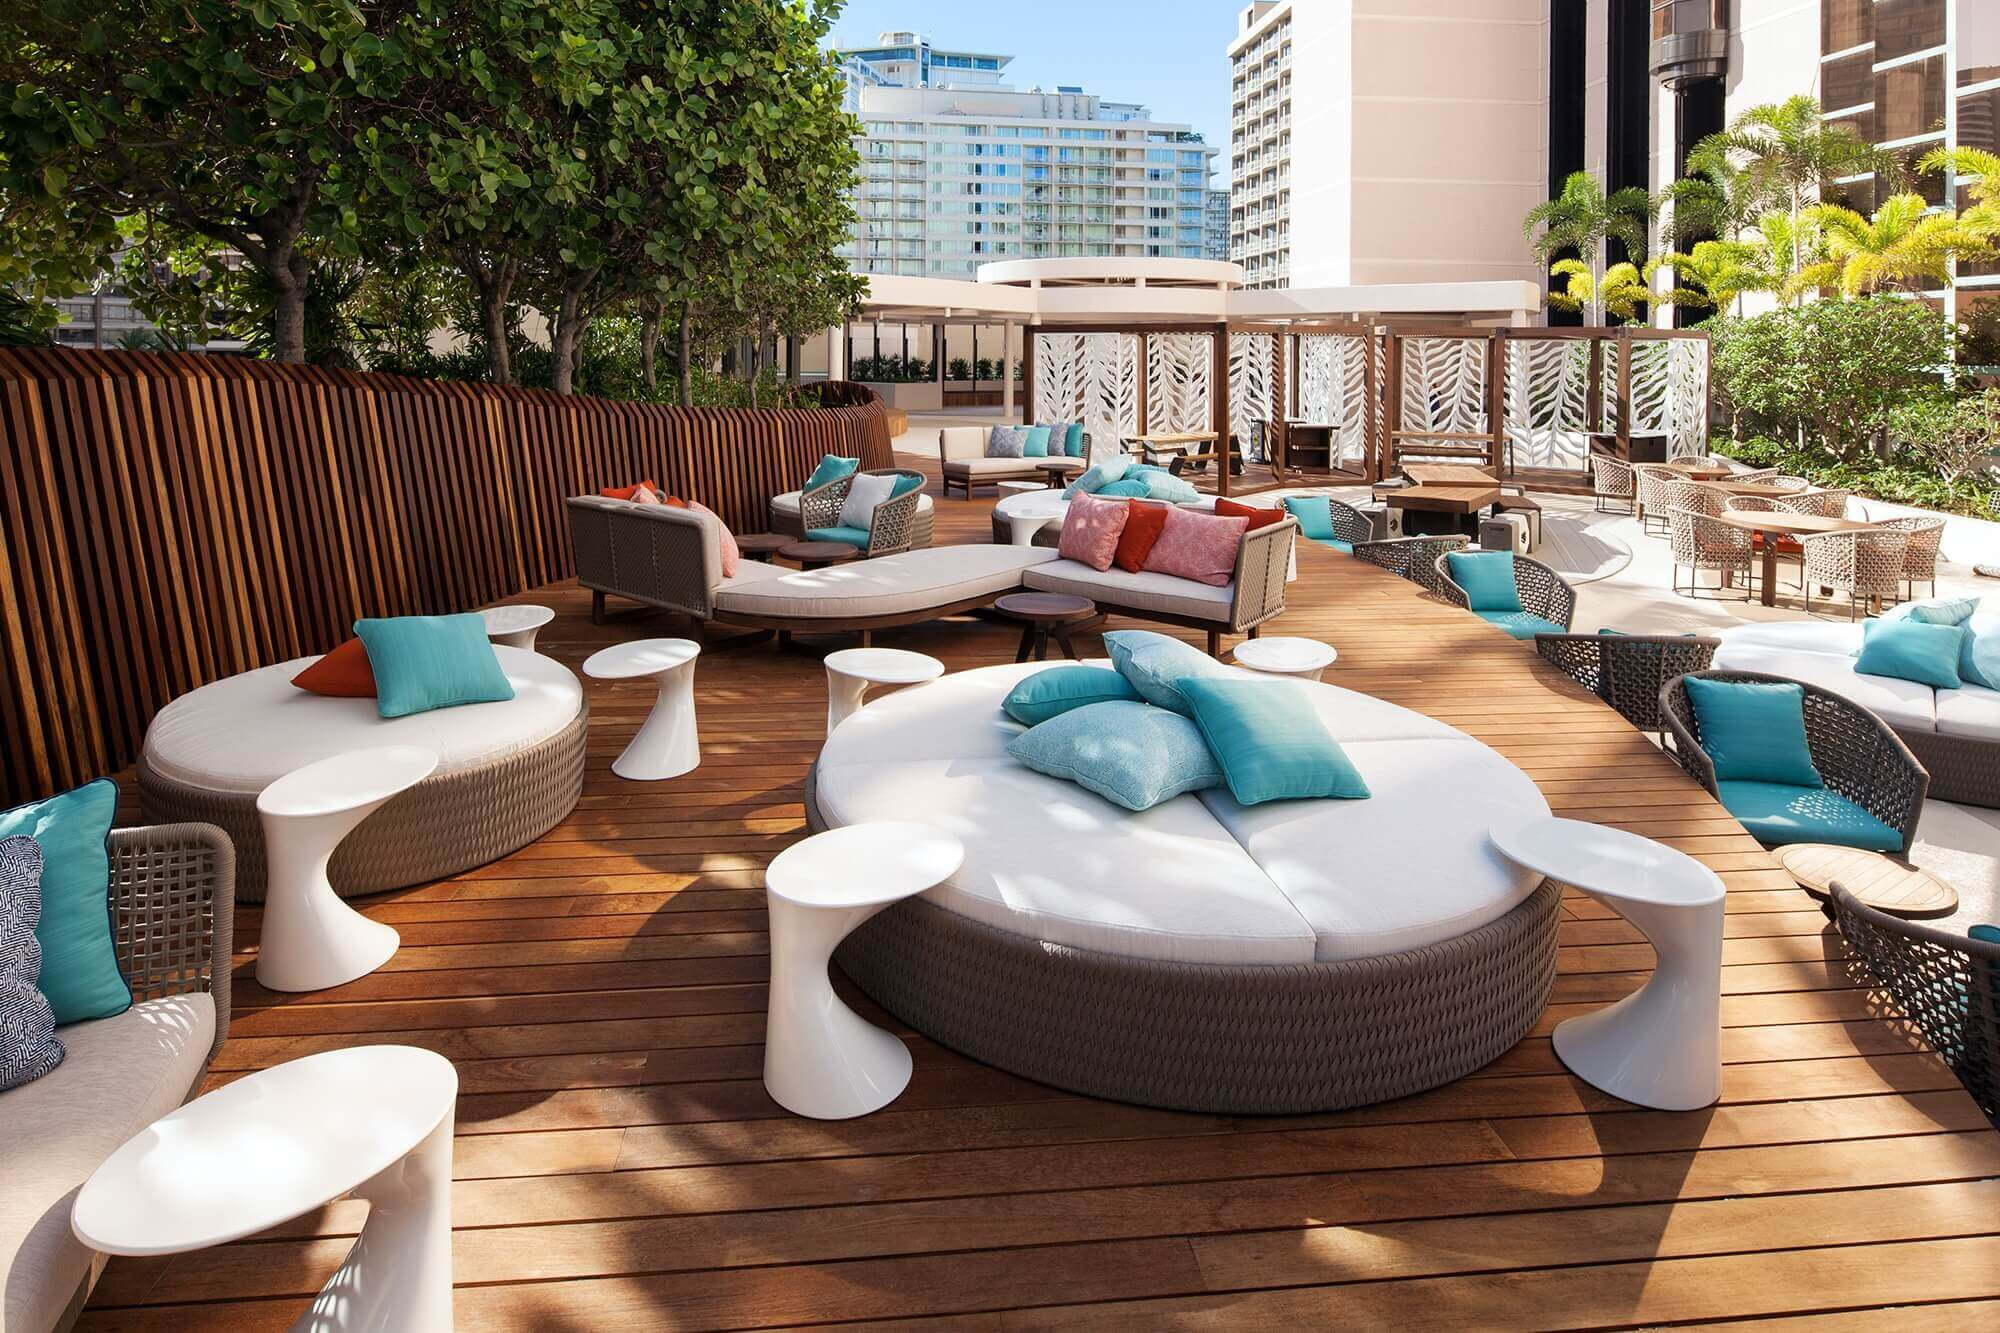 Gallery_Pool-Lounge2.jpg